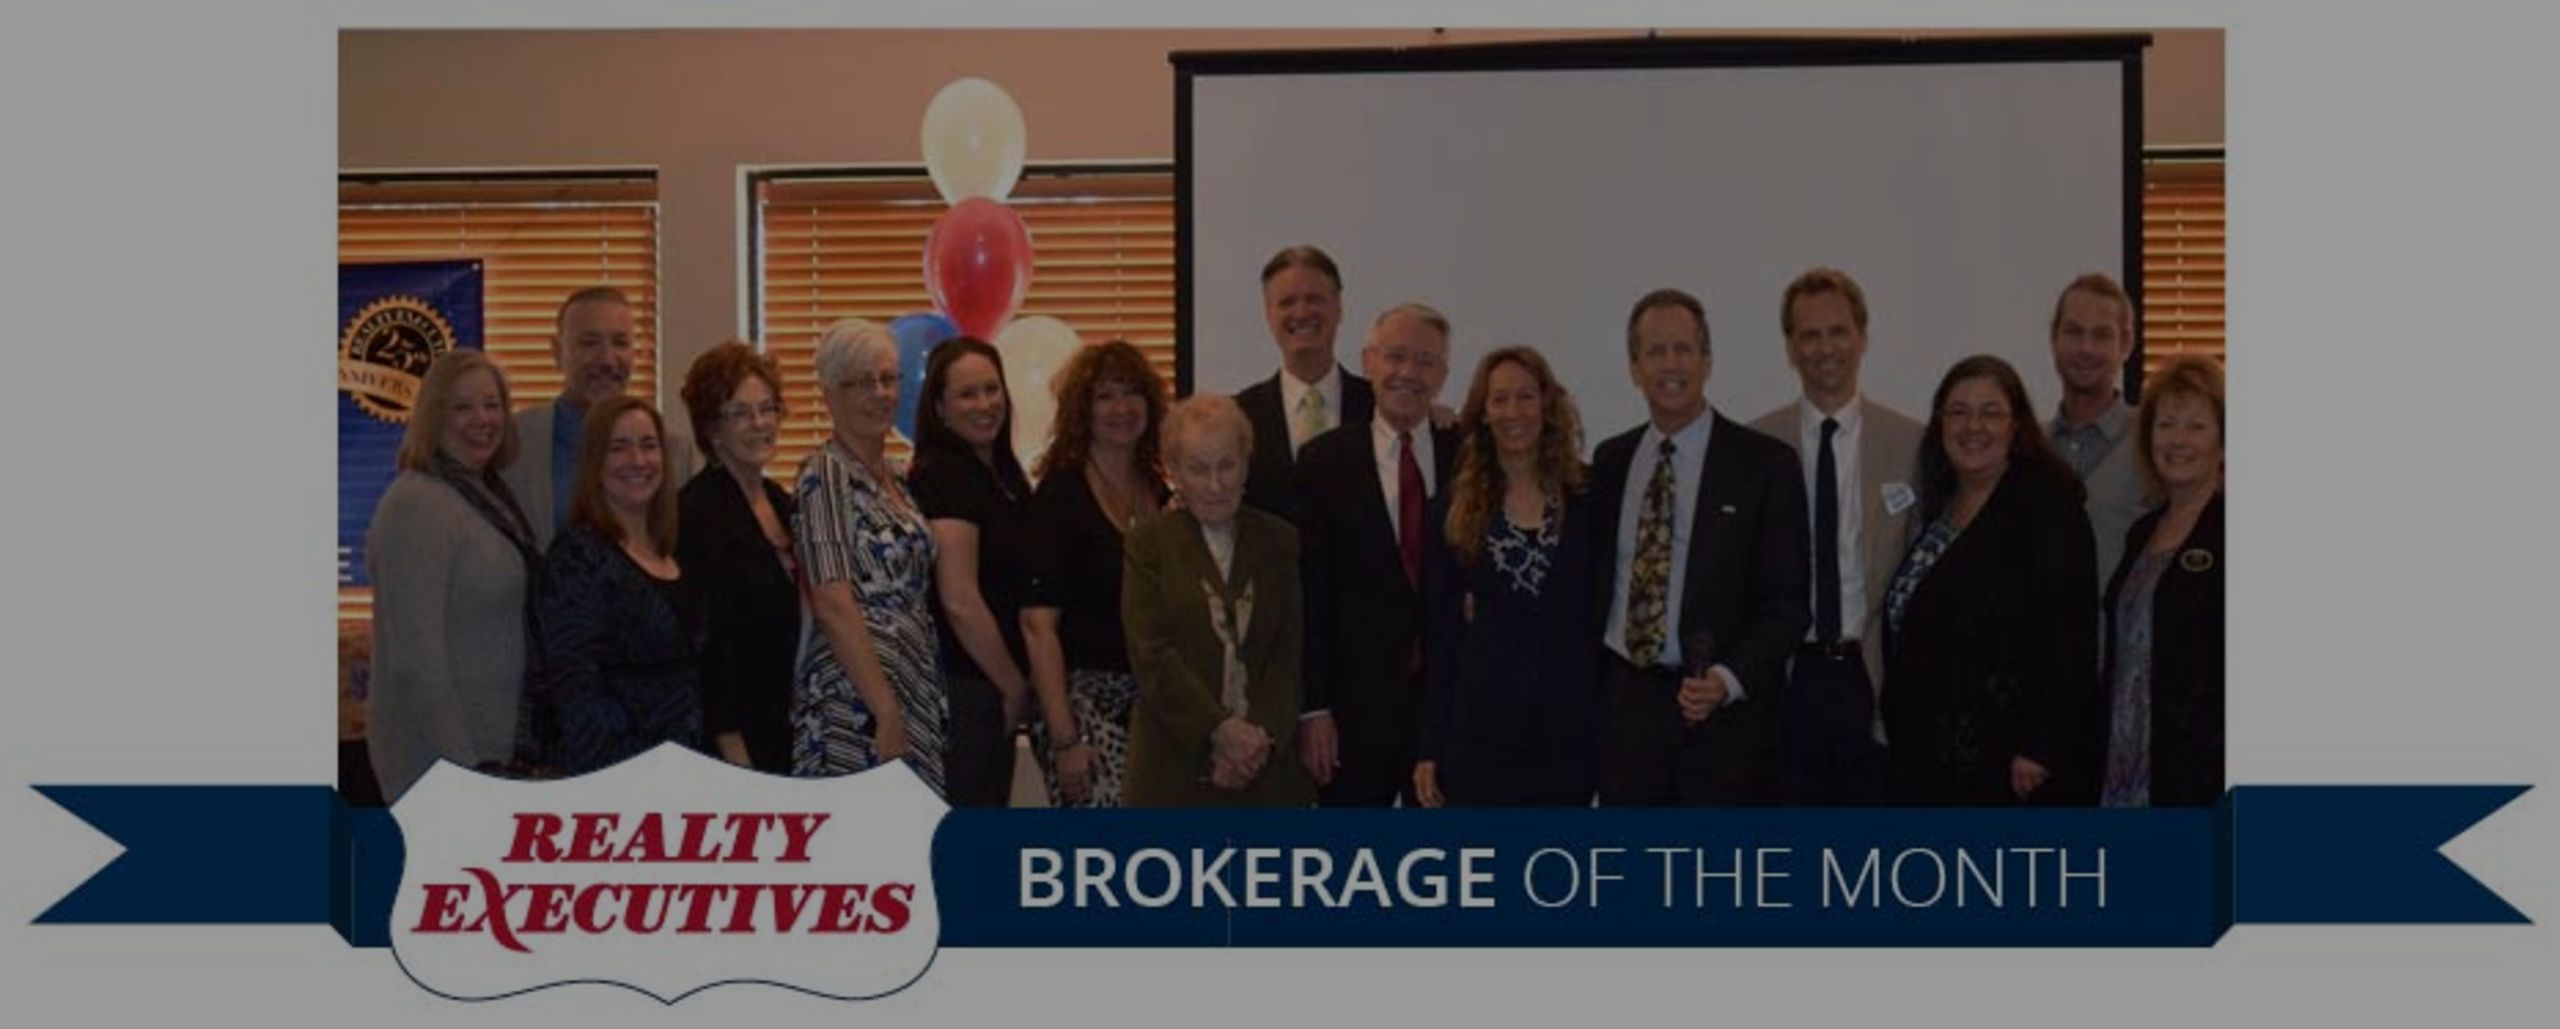 Realty Executives Santa Clarita named Brokerage of the Month for September 2017